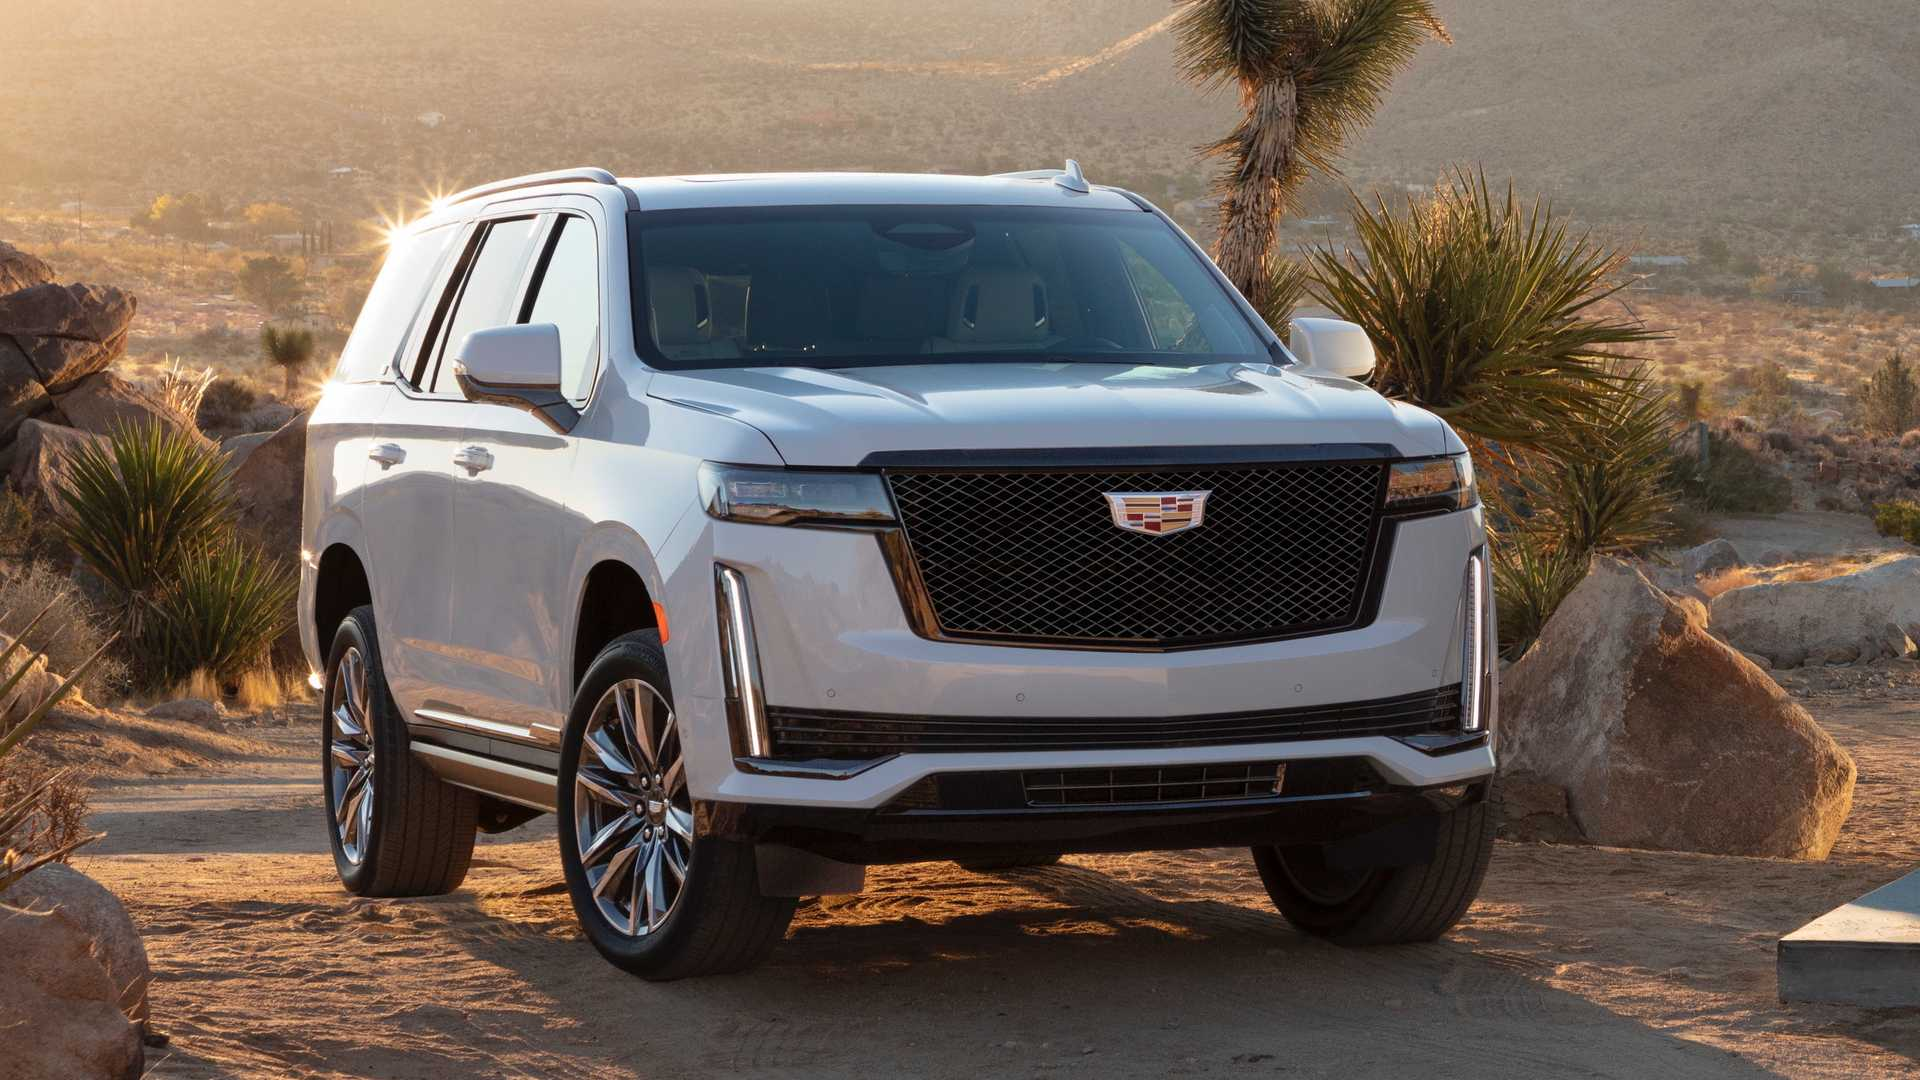 All Wheel Drive Cars List >> 2021 Cadillac Escalade Gets Just 17 Miles Per Gallon Combined